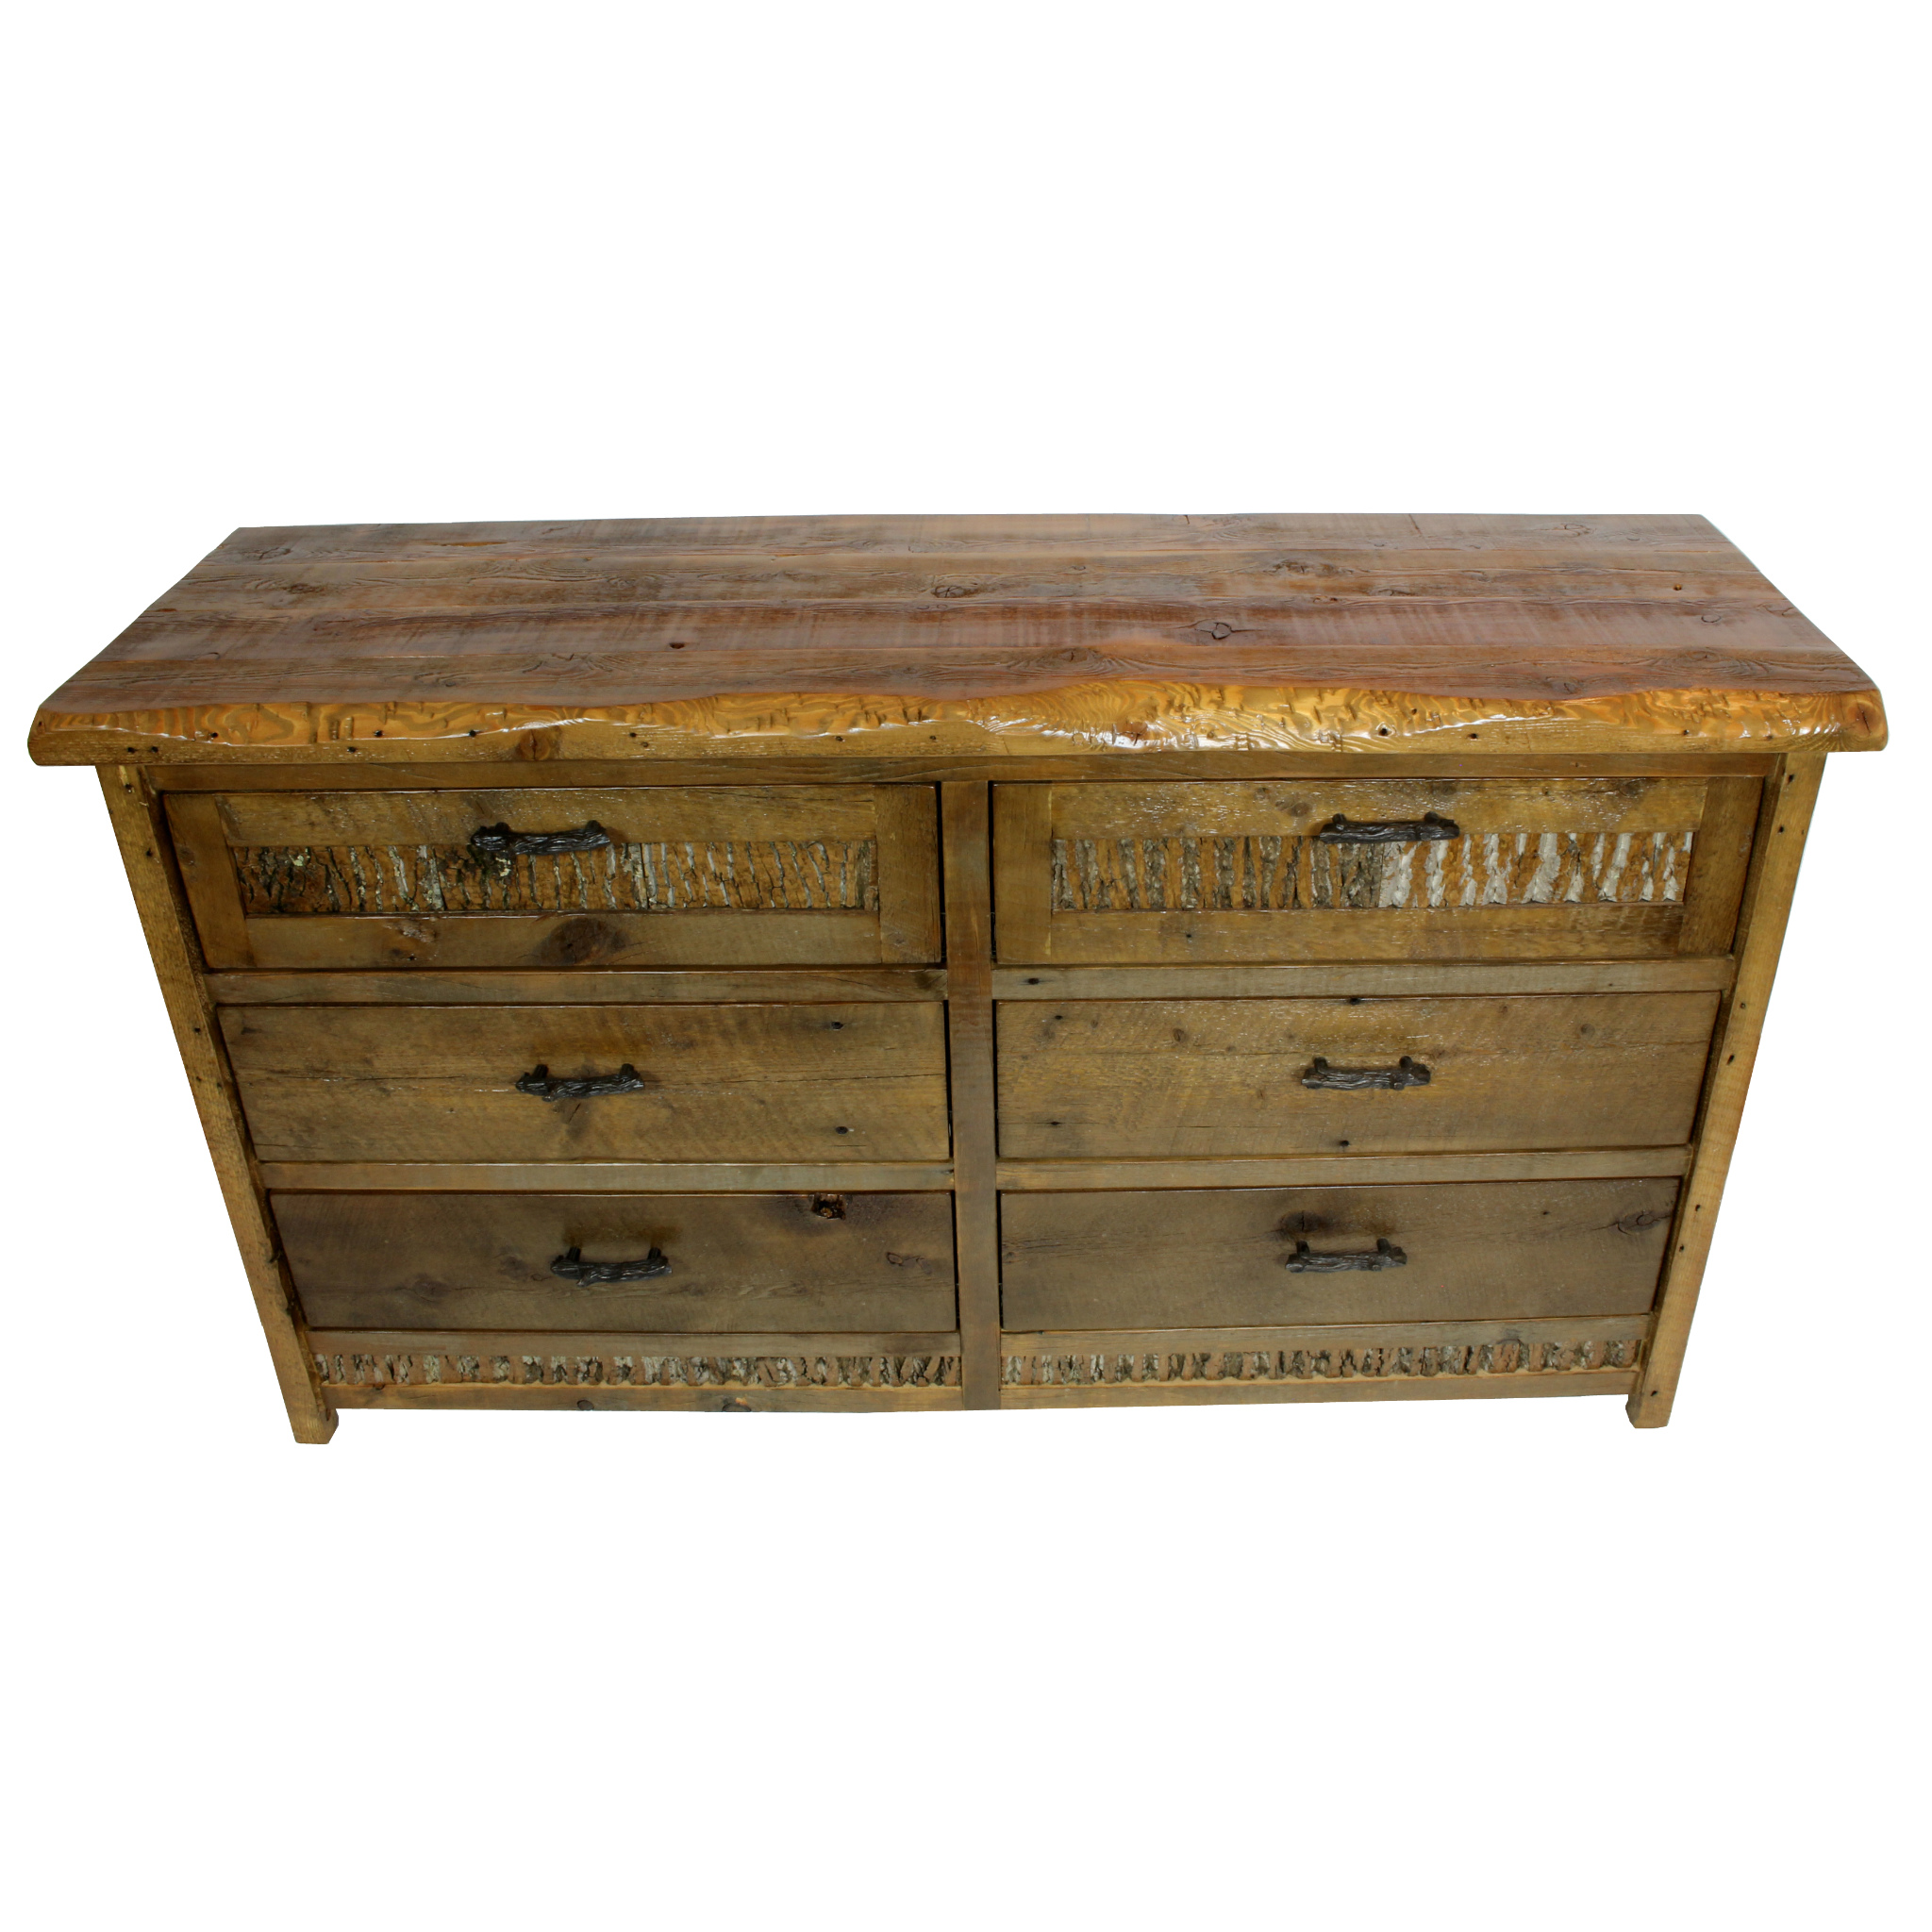 Mountain side dresser  Shown in reclaimed barnwood. Features branch handles. Part of the Mountain Side Collection.